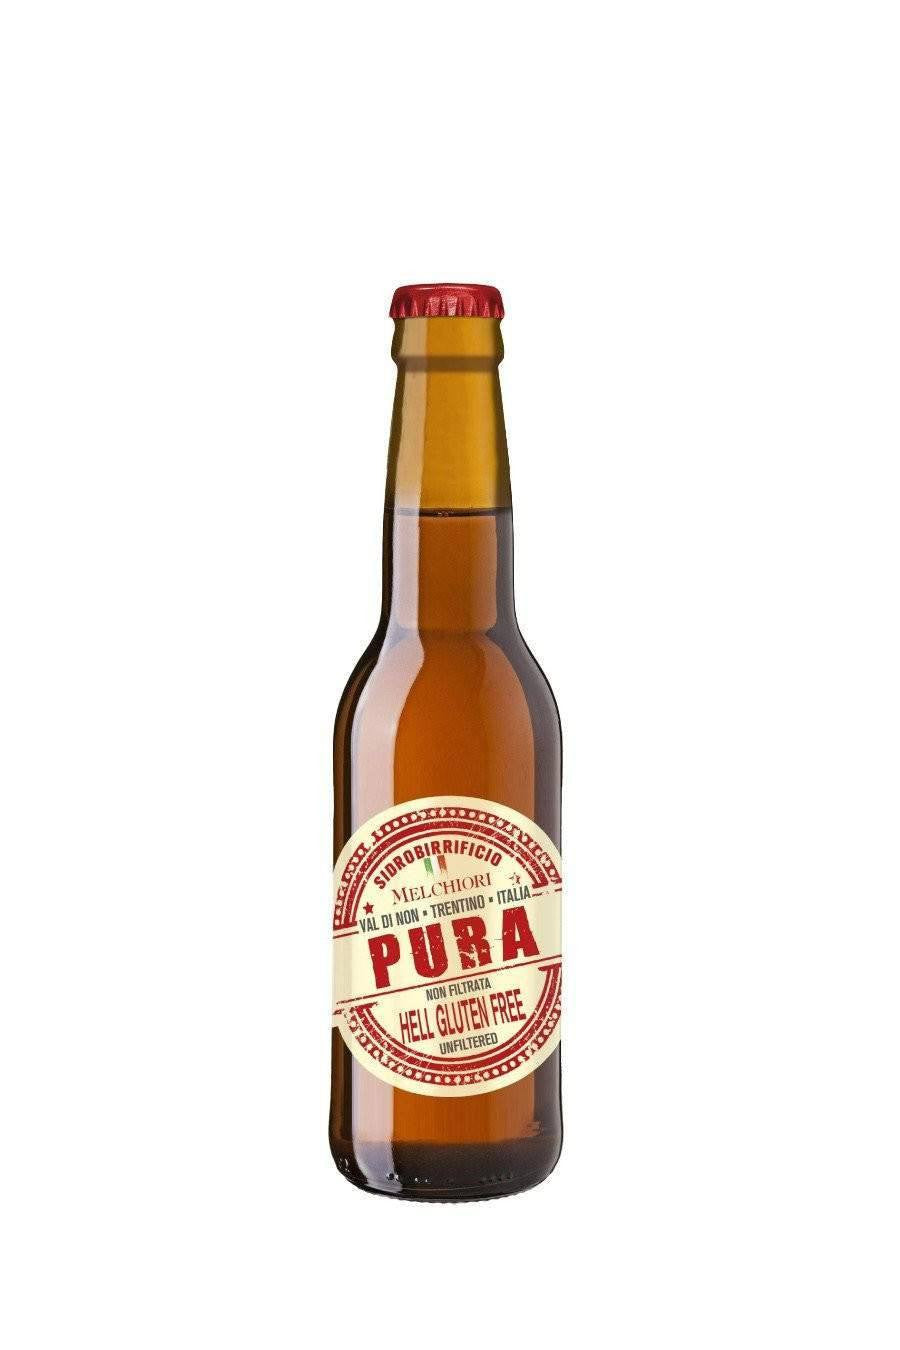 Pura Gluten Free Italian craft beer 330ml - Agrumia